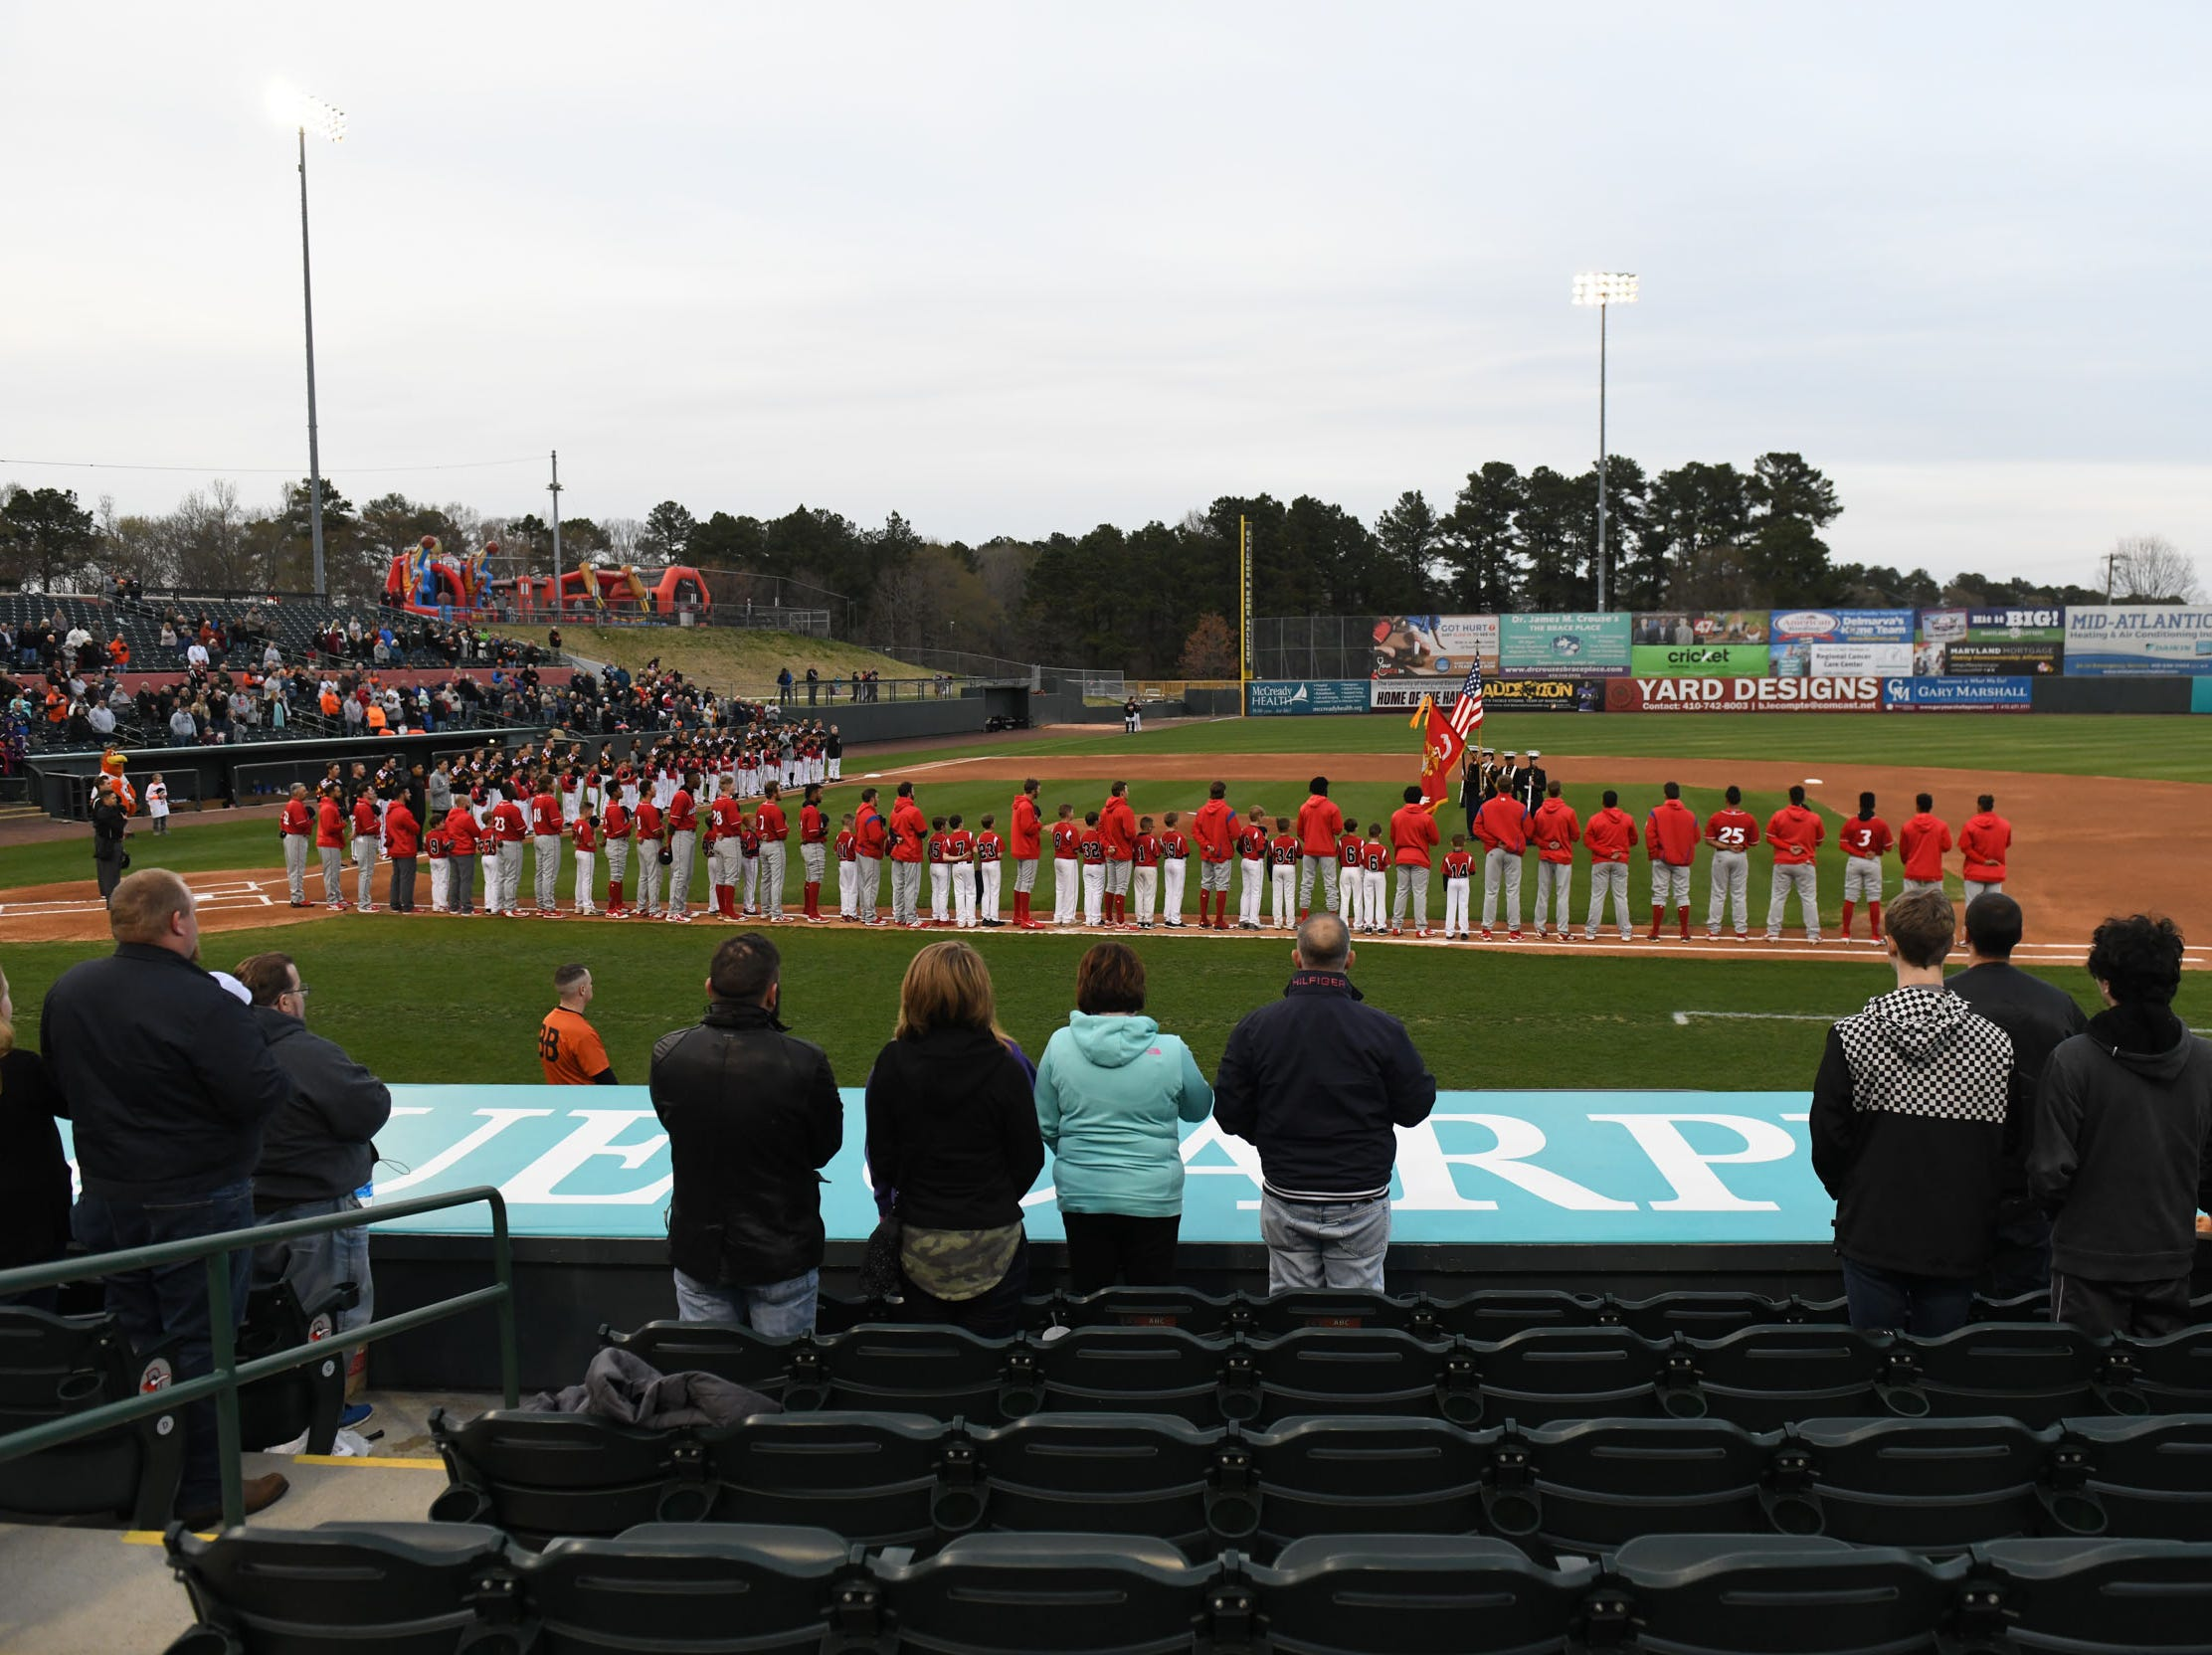 Opening night at the Delmarva Shorebirds against the Wilmington Blue Claws on Thursday, April 11, 2019.